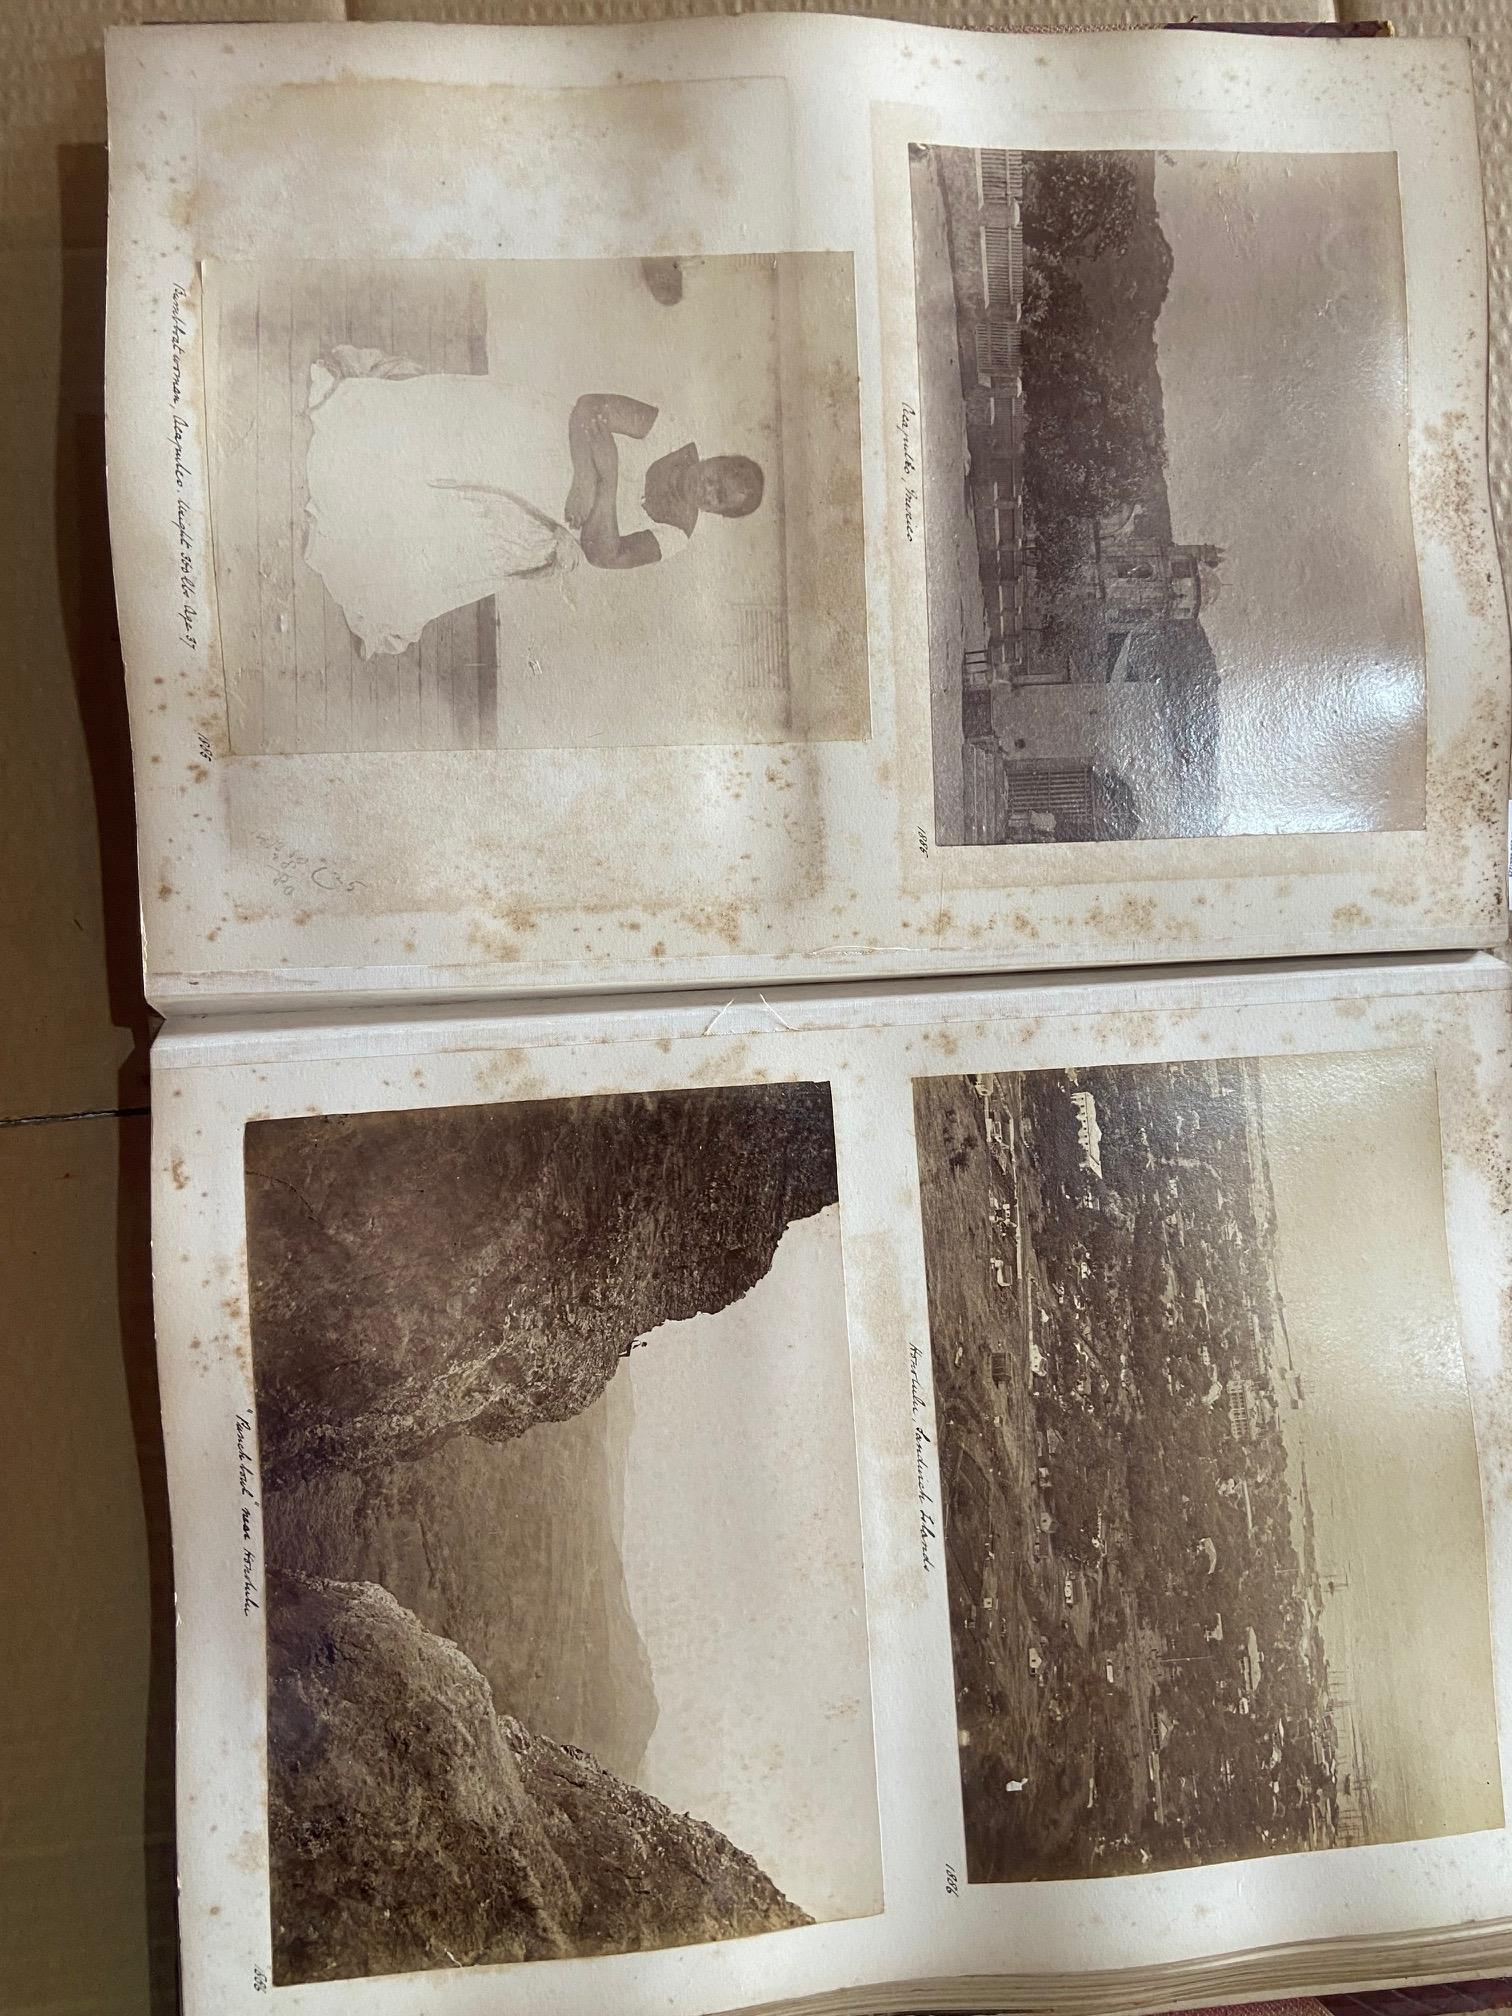 Photographs: Two large folio Albums of Photographs, each c. 1870 - 1890's. One Album contains - Image 14 of 31